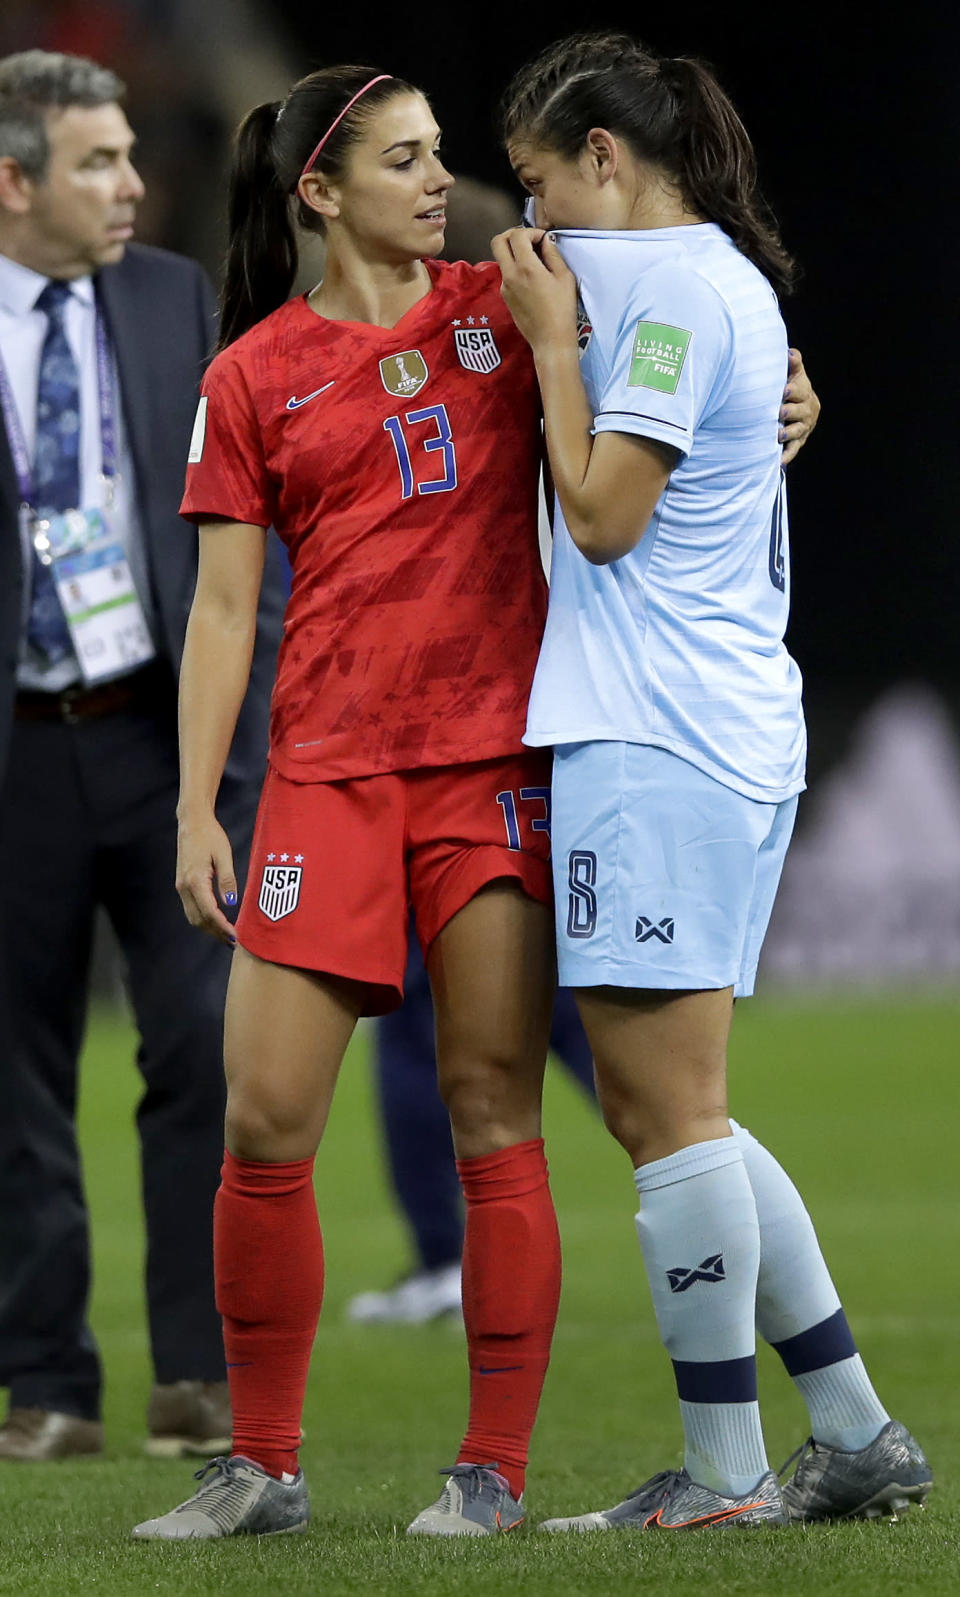 United States' Alex Morgan, left, comforts Thailand's Miranda Nild, right, after the Women's World Cup Group F soccer match between United States and Thailand at the Stade Auguste-Delaune in Reims, France, Tuesday, June 11, 2019. Morgan scored five goals during the match. (AP Photo/Alessandra Tarantino)